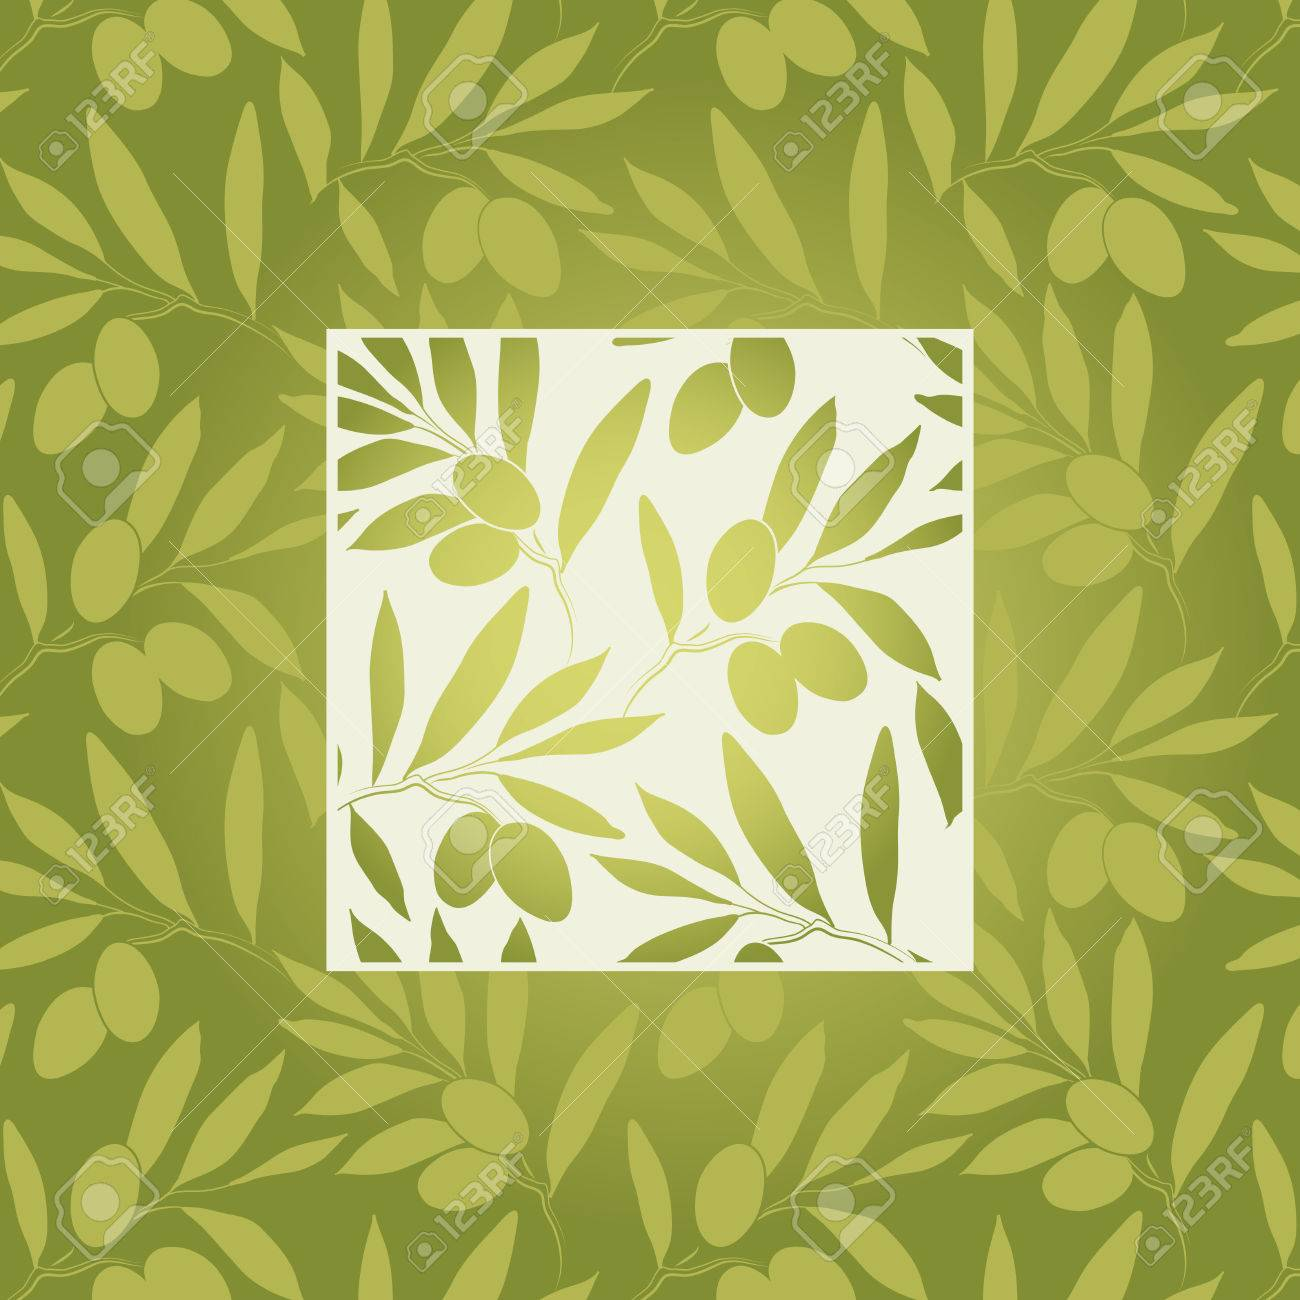 Pattern Olive Branch Royalty Free Cliparts, Vectors, And Stock ...